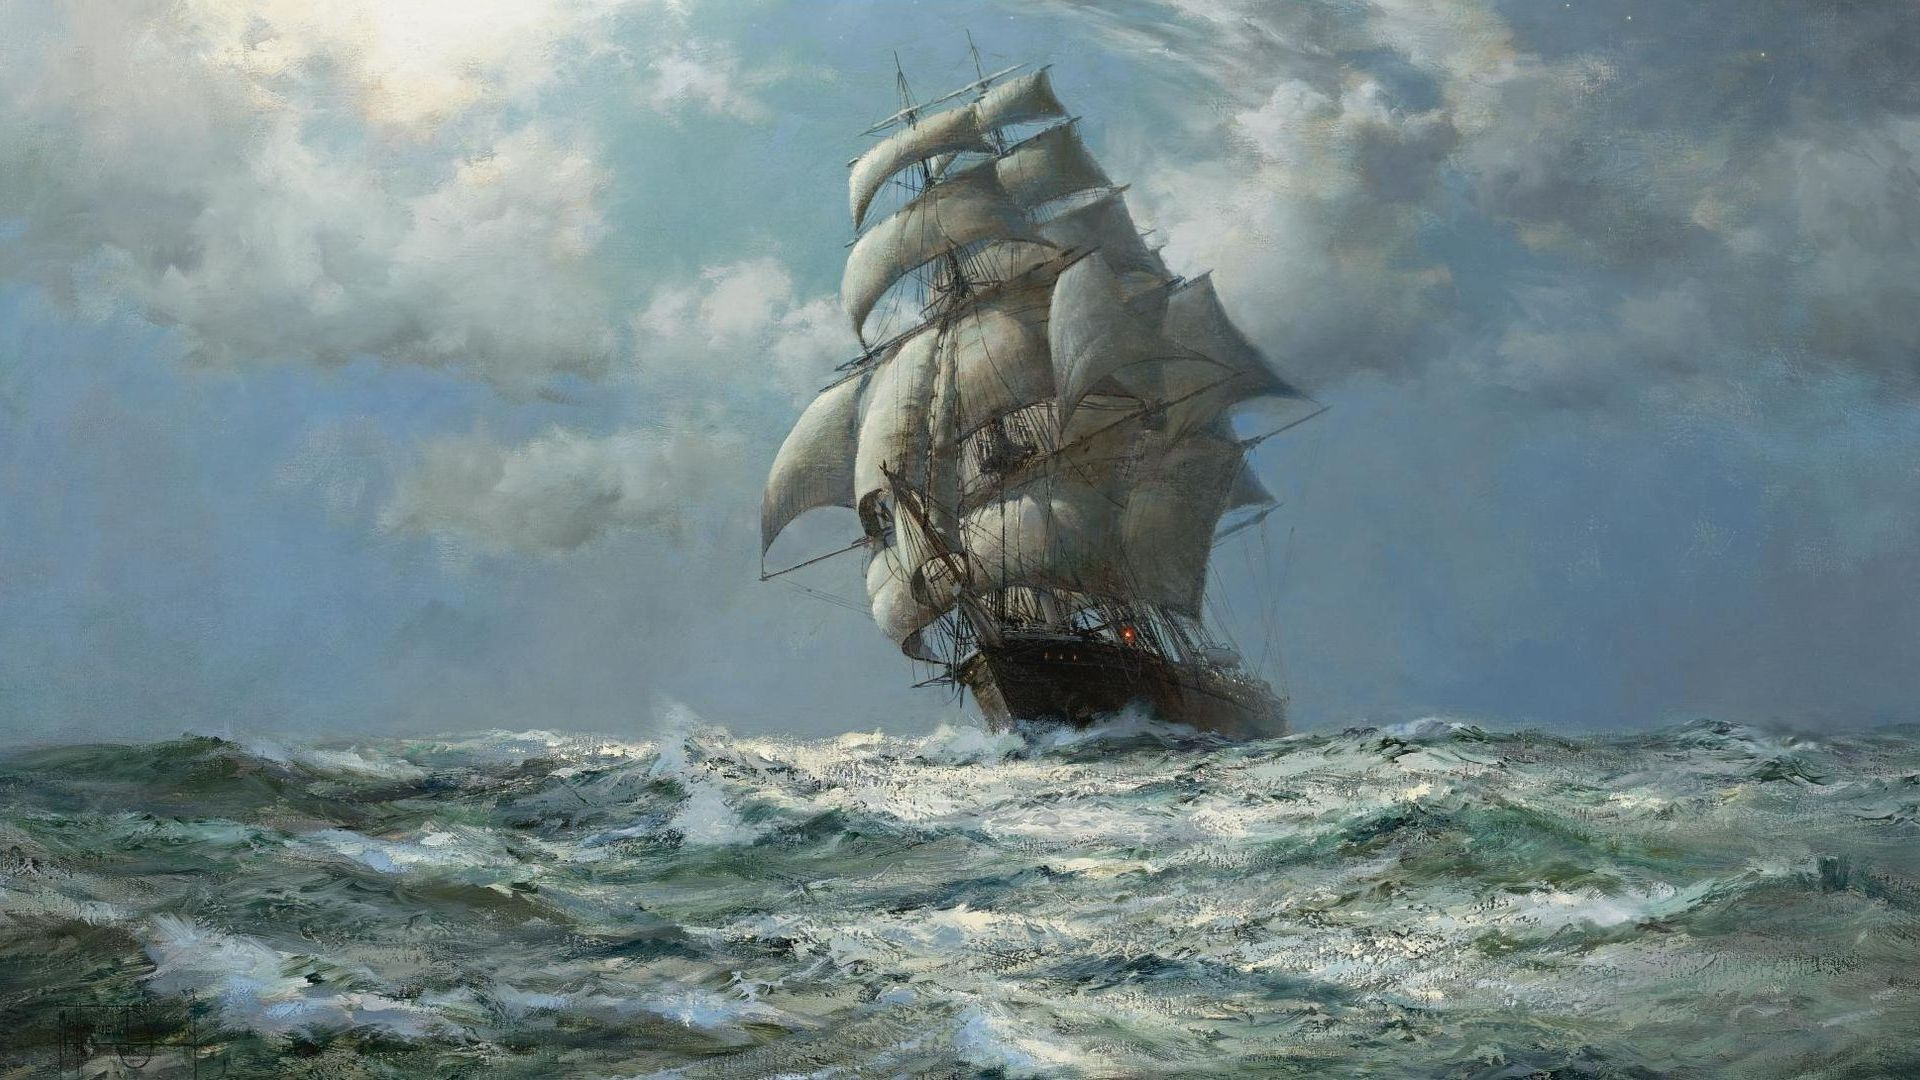 Wallpapers Sail Schooner Ship Ocean Painting Image Resolution X 1920x1080